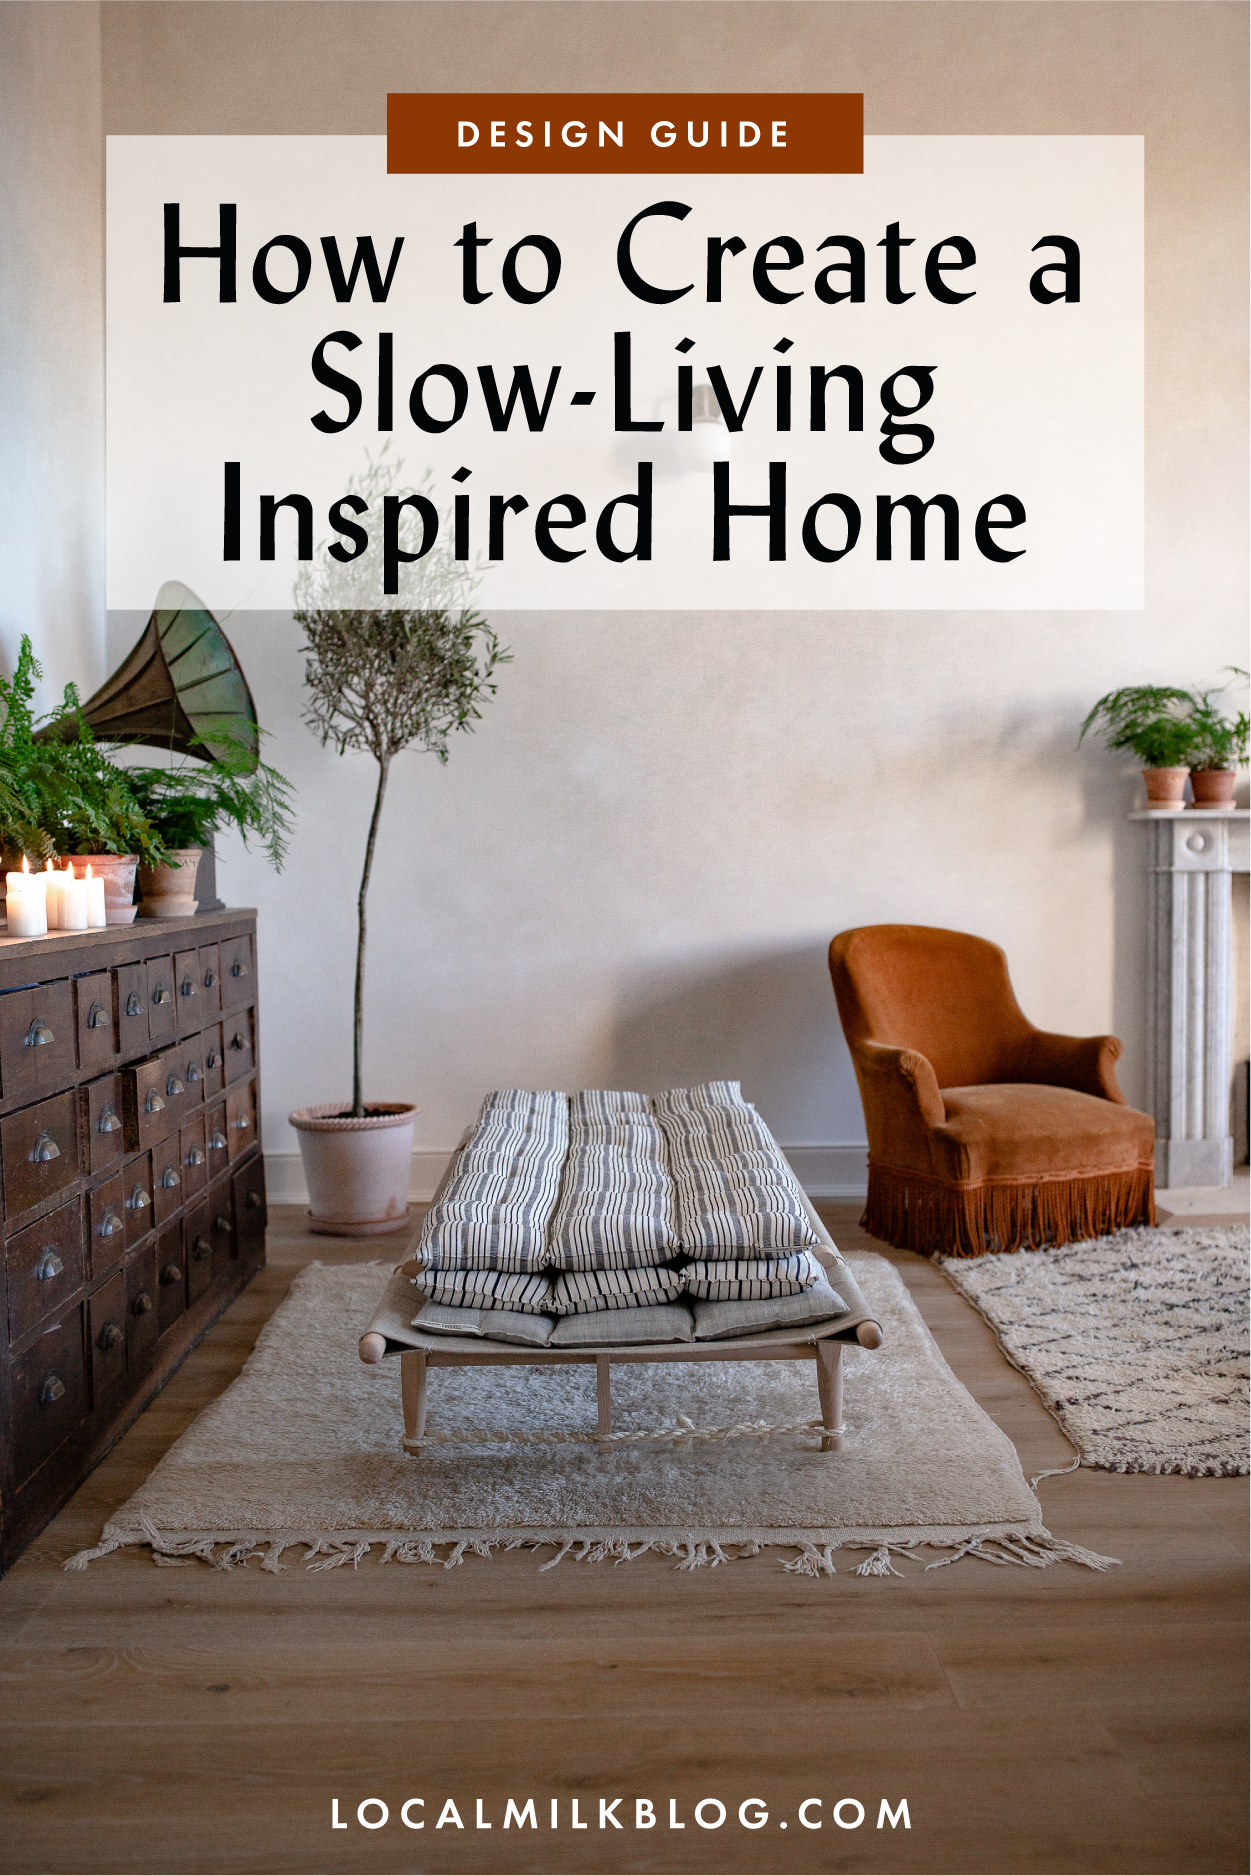 The Guide To Designing A Slow Living Inspired Home Local Milk Blog Slow Living Design Your Home Inspired Homes